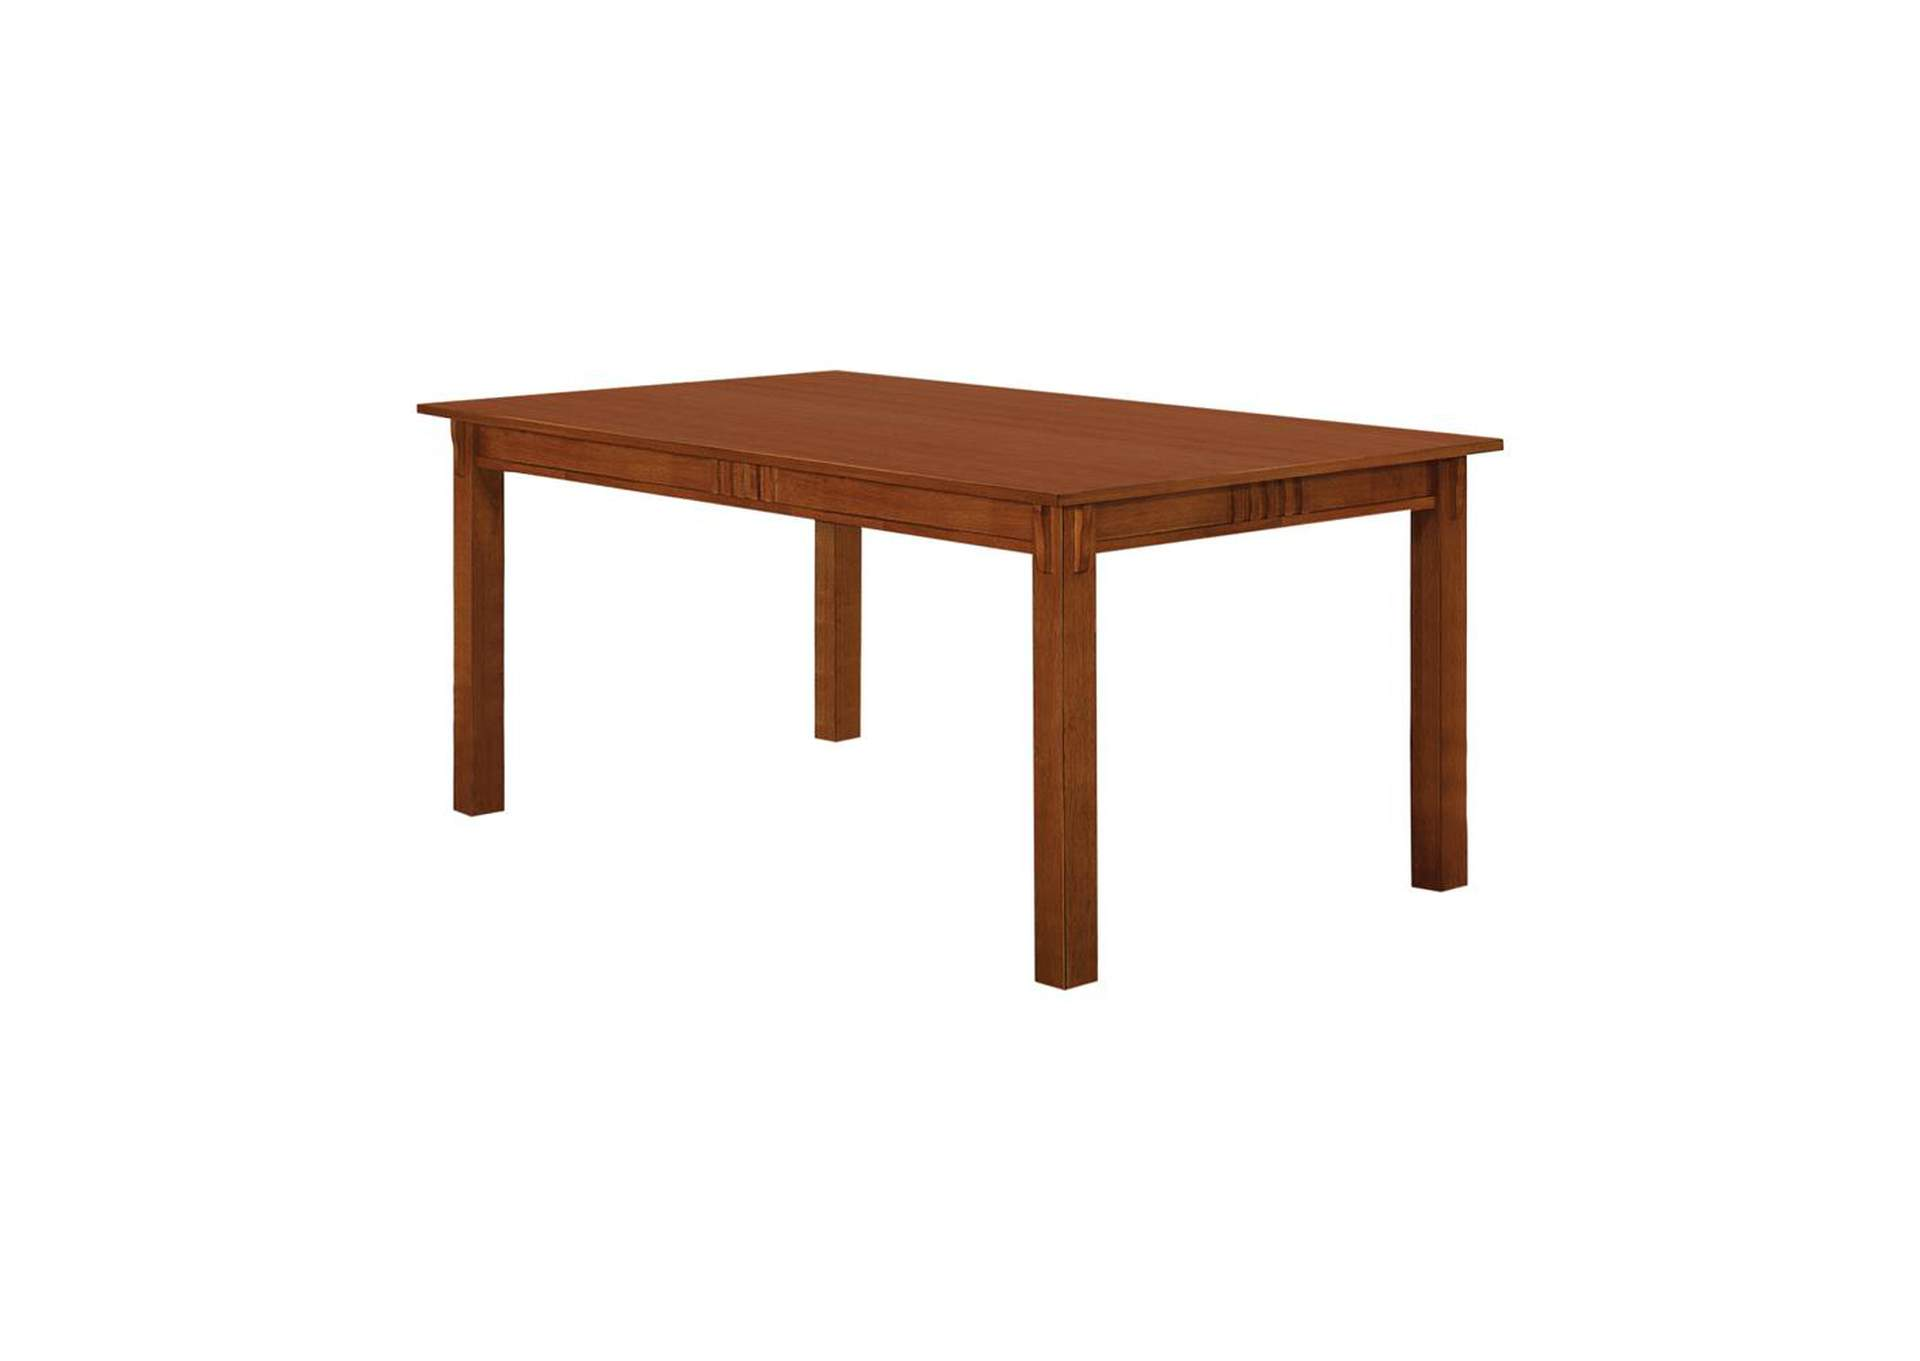 Mule Fawn Morrisa Mission Dining Table,Coaster Furniture